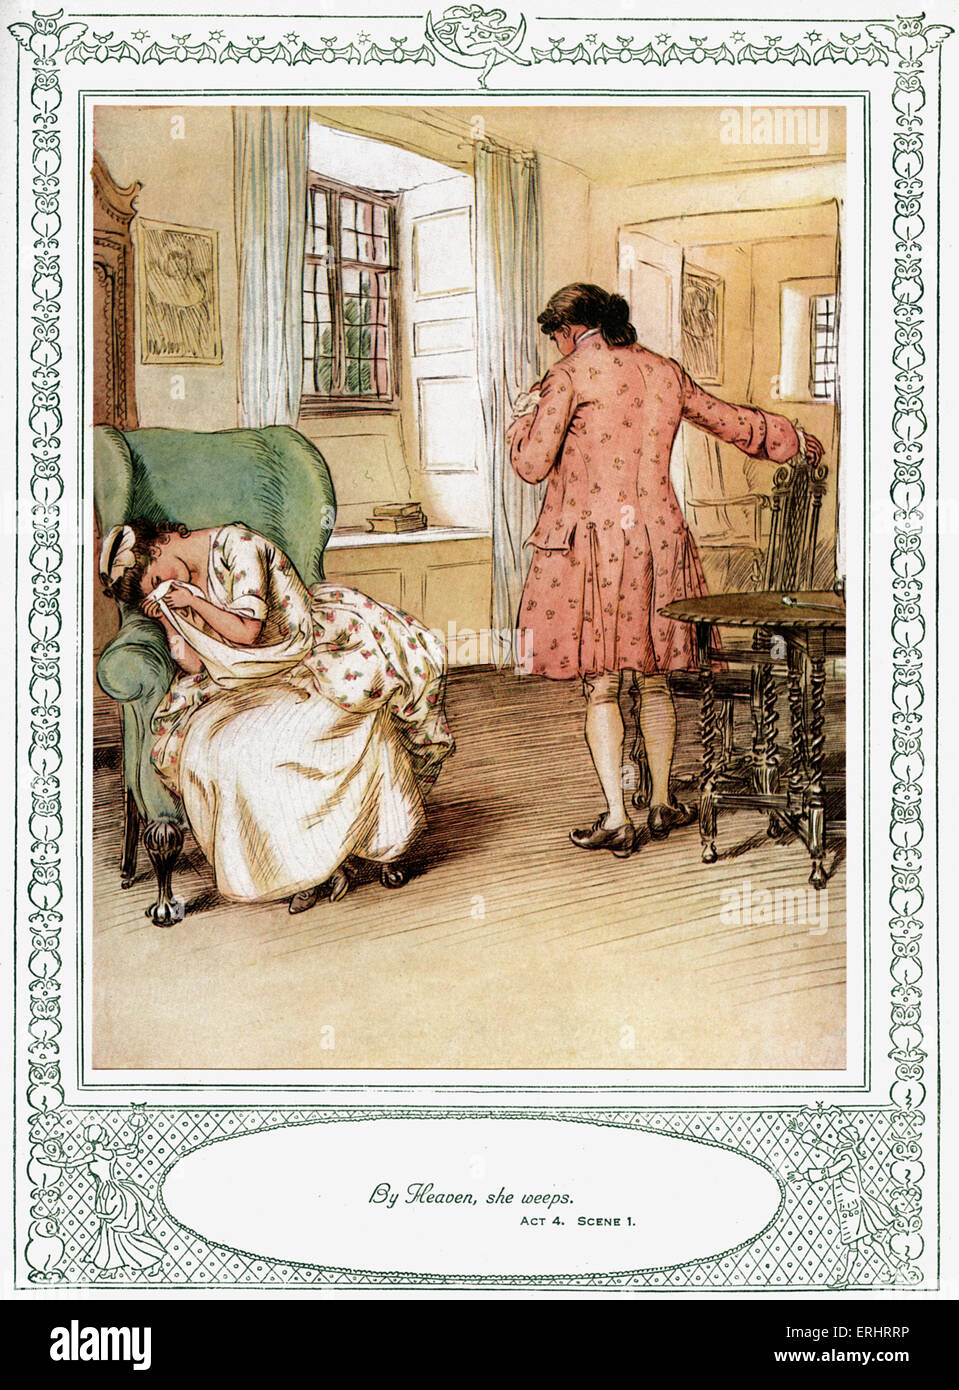 Oliver Goldsmith 's play - 'She Stoops to Conquer or The Mistakes of a Night'. Act 4, Scene 1 - 'By - Stock Image